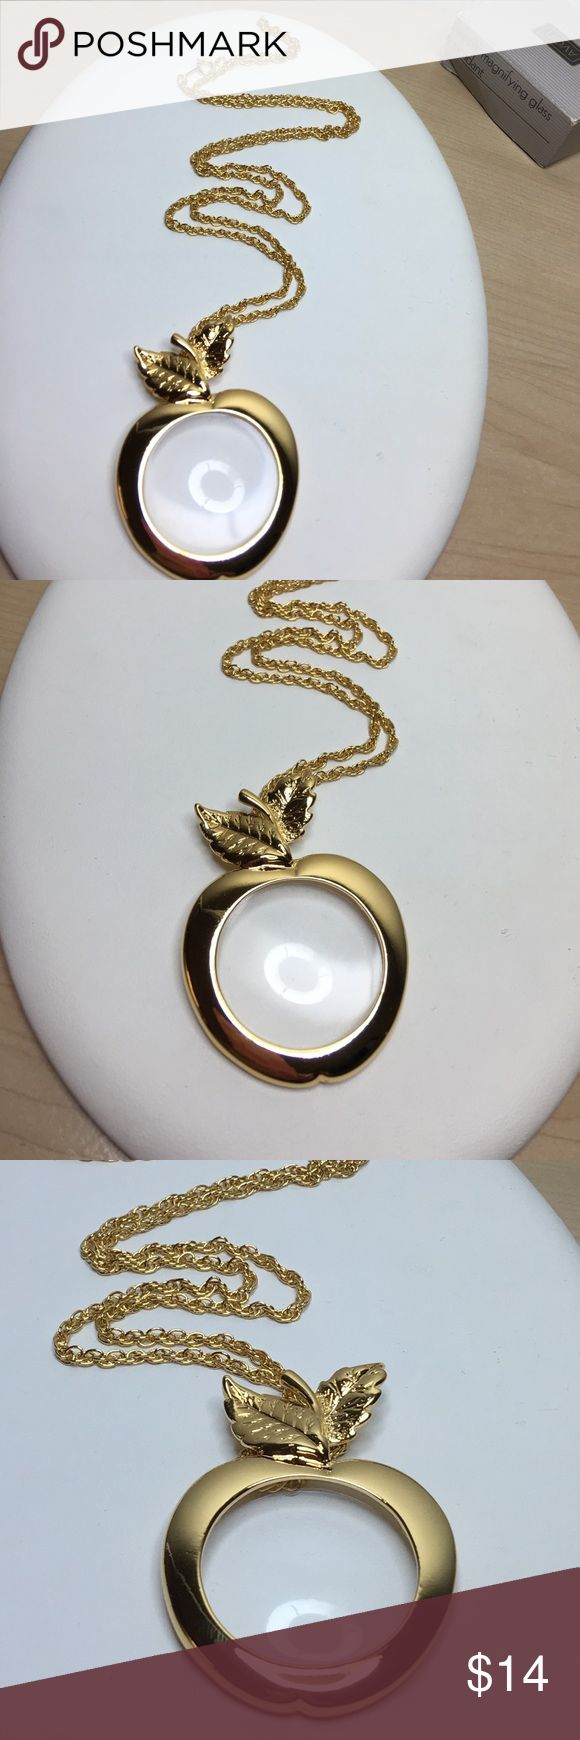 Selling this 🆕Vintage Avon Gold Apple Magnifying Glass Pendant on Poshmark! My username is: antiqueorunique. #shopmycloset #poshmark #fashion #shopping #style #forsale #Vintage #Jewelry